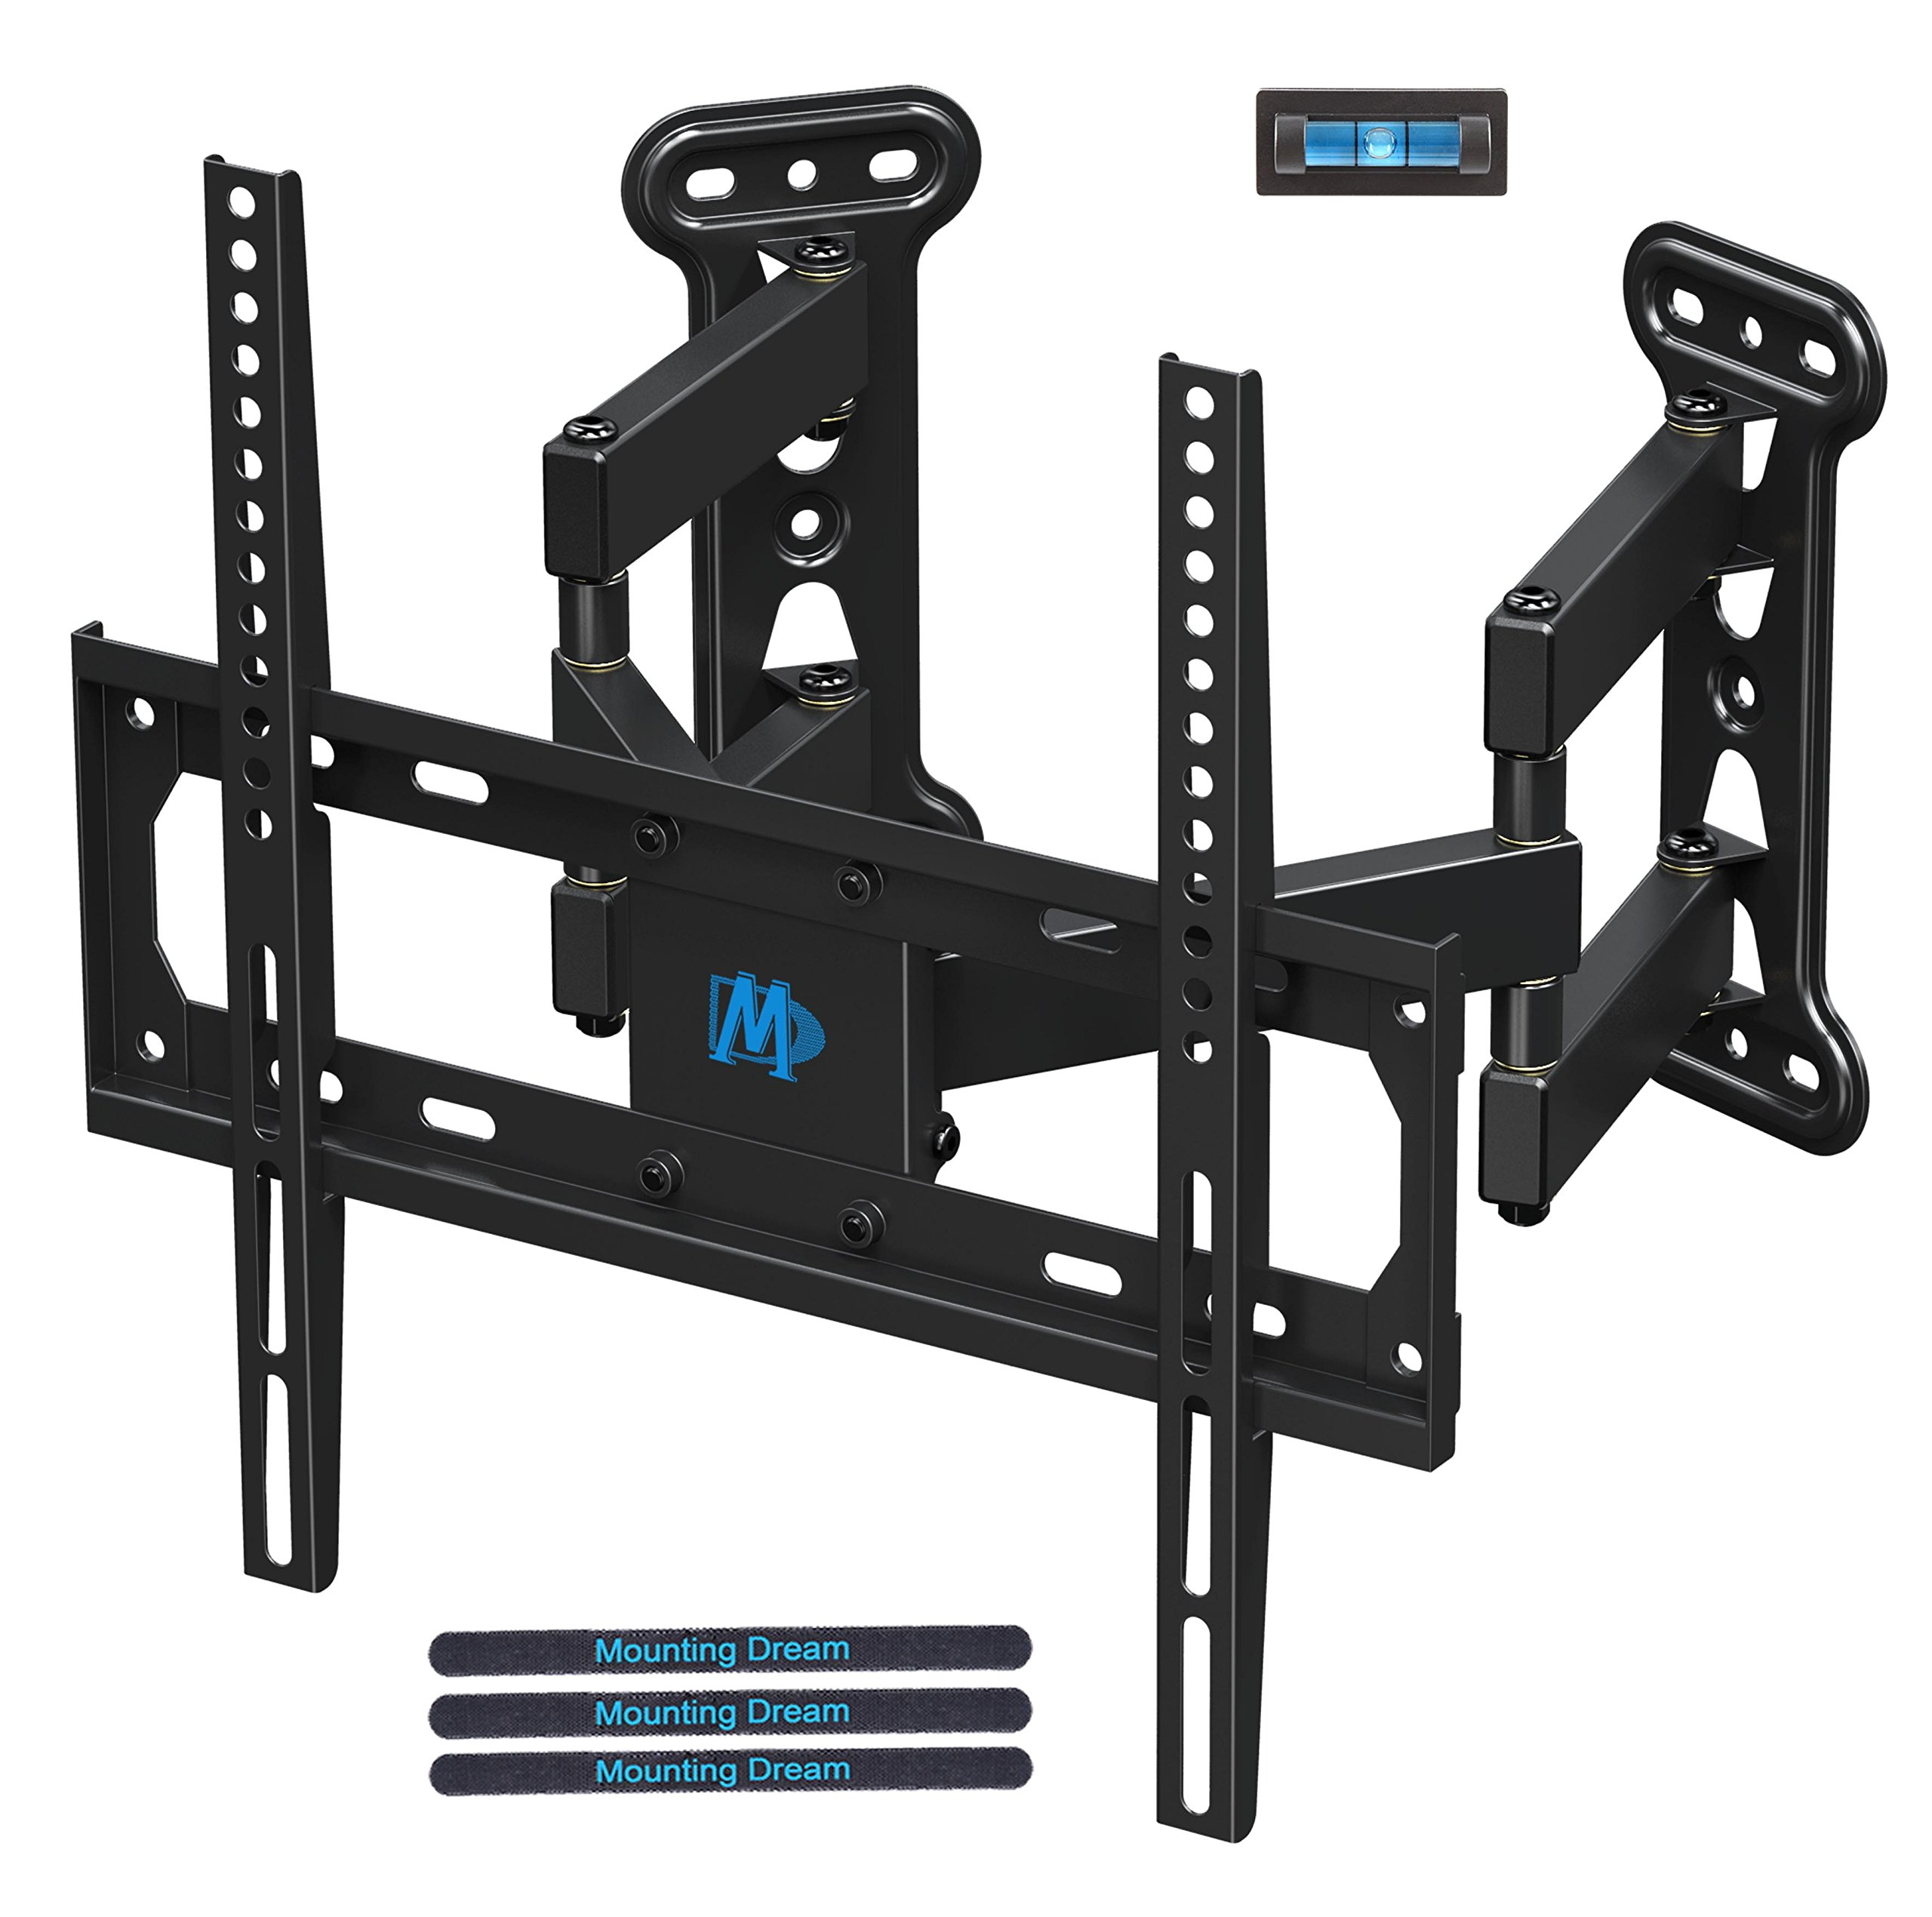 Mounting Dream MD2501 Corner TV Wall Mount Bracket for most 26-50 Inch LED, LCD, OLED Flat Panel Screen TVs with Full Motion Swivel Articulating Arms up to VESA 400x400mm and 60 LBS with Tilting by Mounting Dream